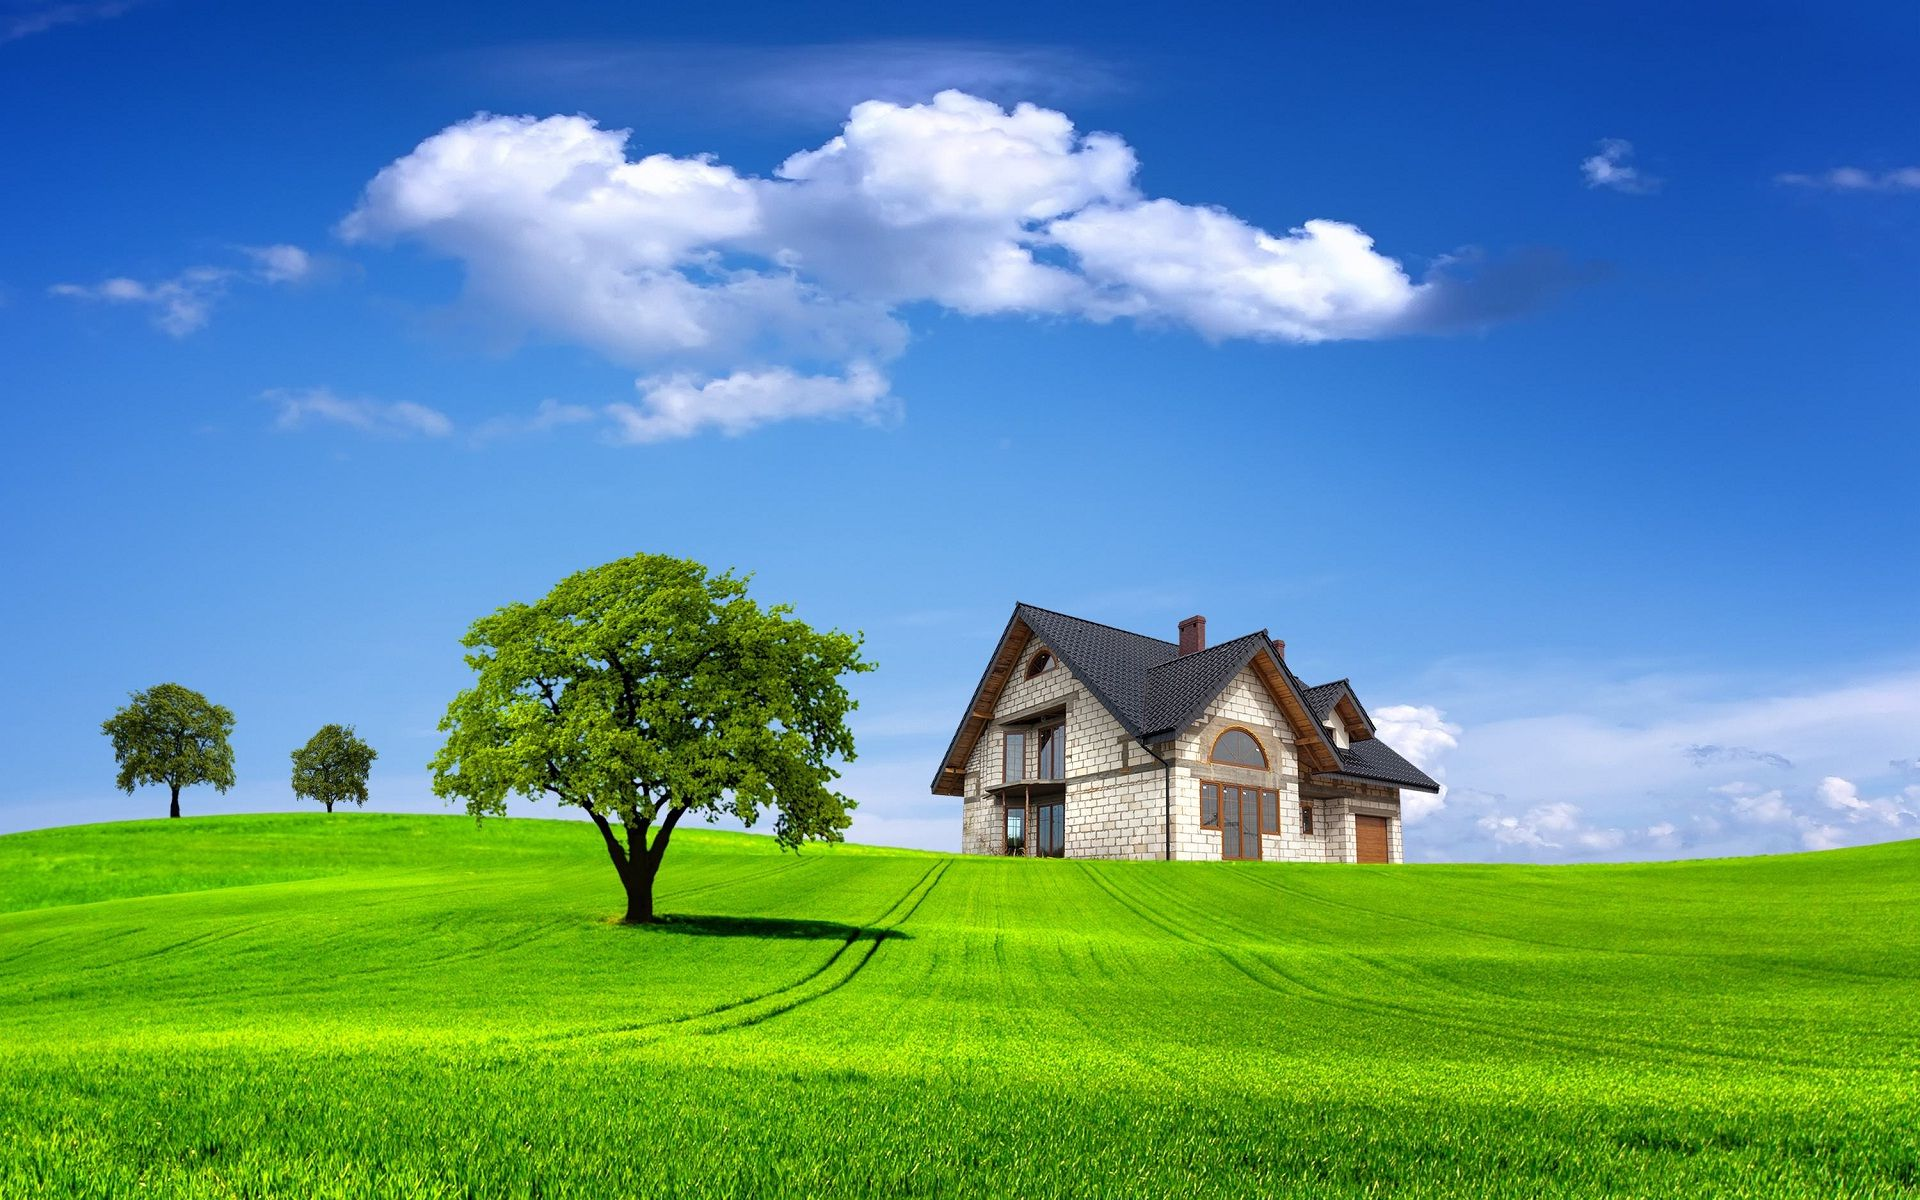 Hdq Beautiful Beautiful Village Images Wallpapers Gallery Nature